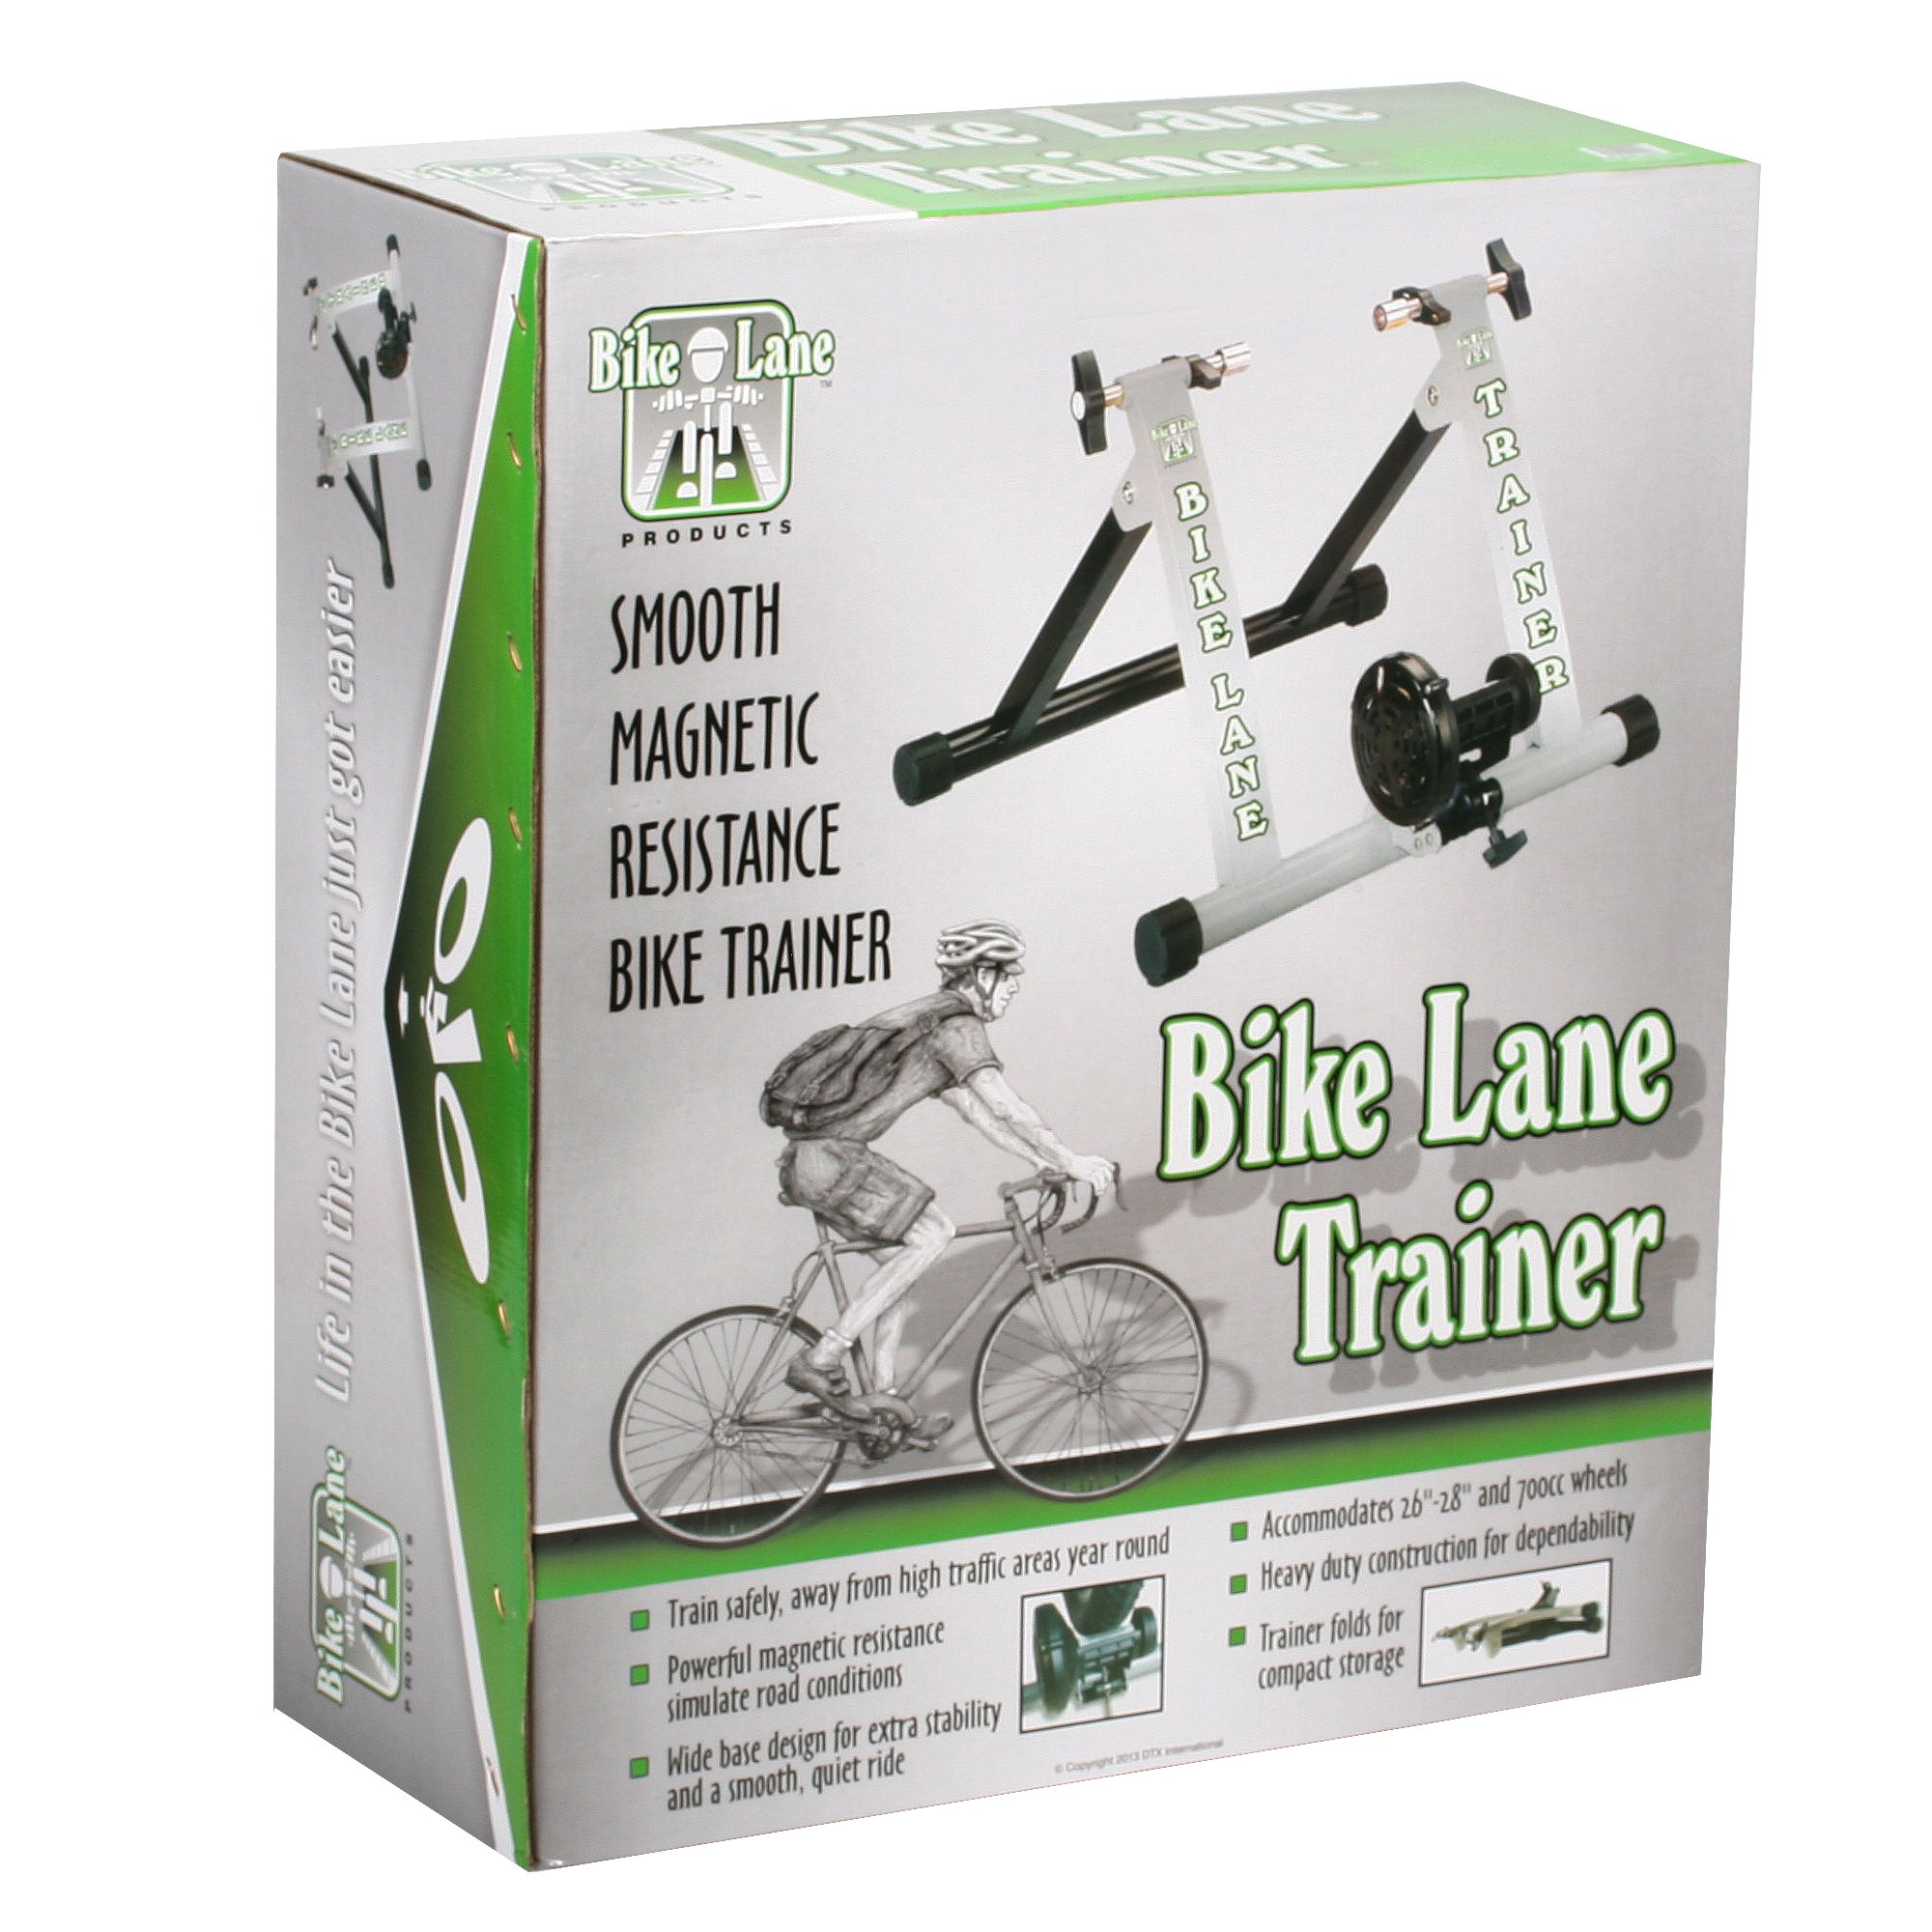 Bike Lane Trainer Bicycle Indoor Trainer Exercise Machine Ride All Year Around With 850 Gram Machined Steel Flywheel for the Most Natural Pedal Feel by Bike Lane (Image #5)